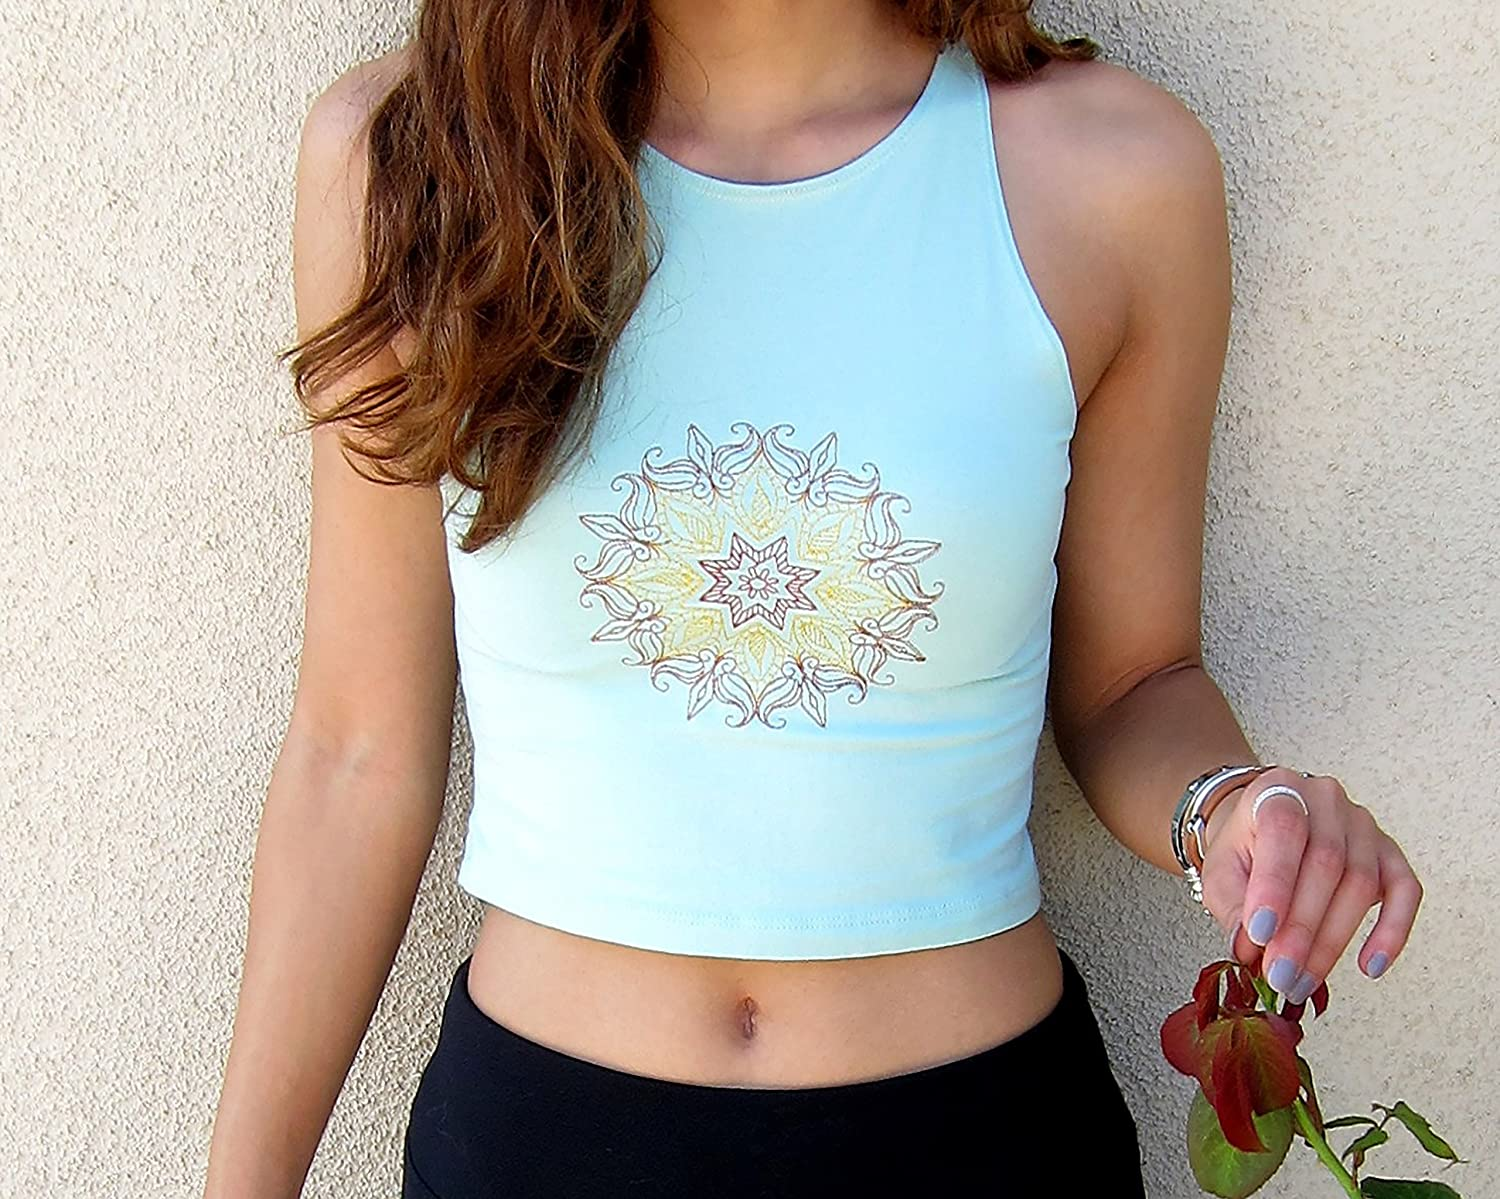 Gifts Mandala Crop Top-Boho Outlet SALE Top-Yoga Top-Embroidered Yoga Cr